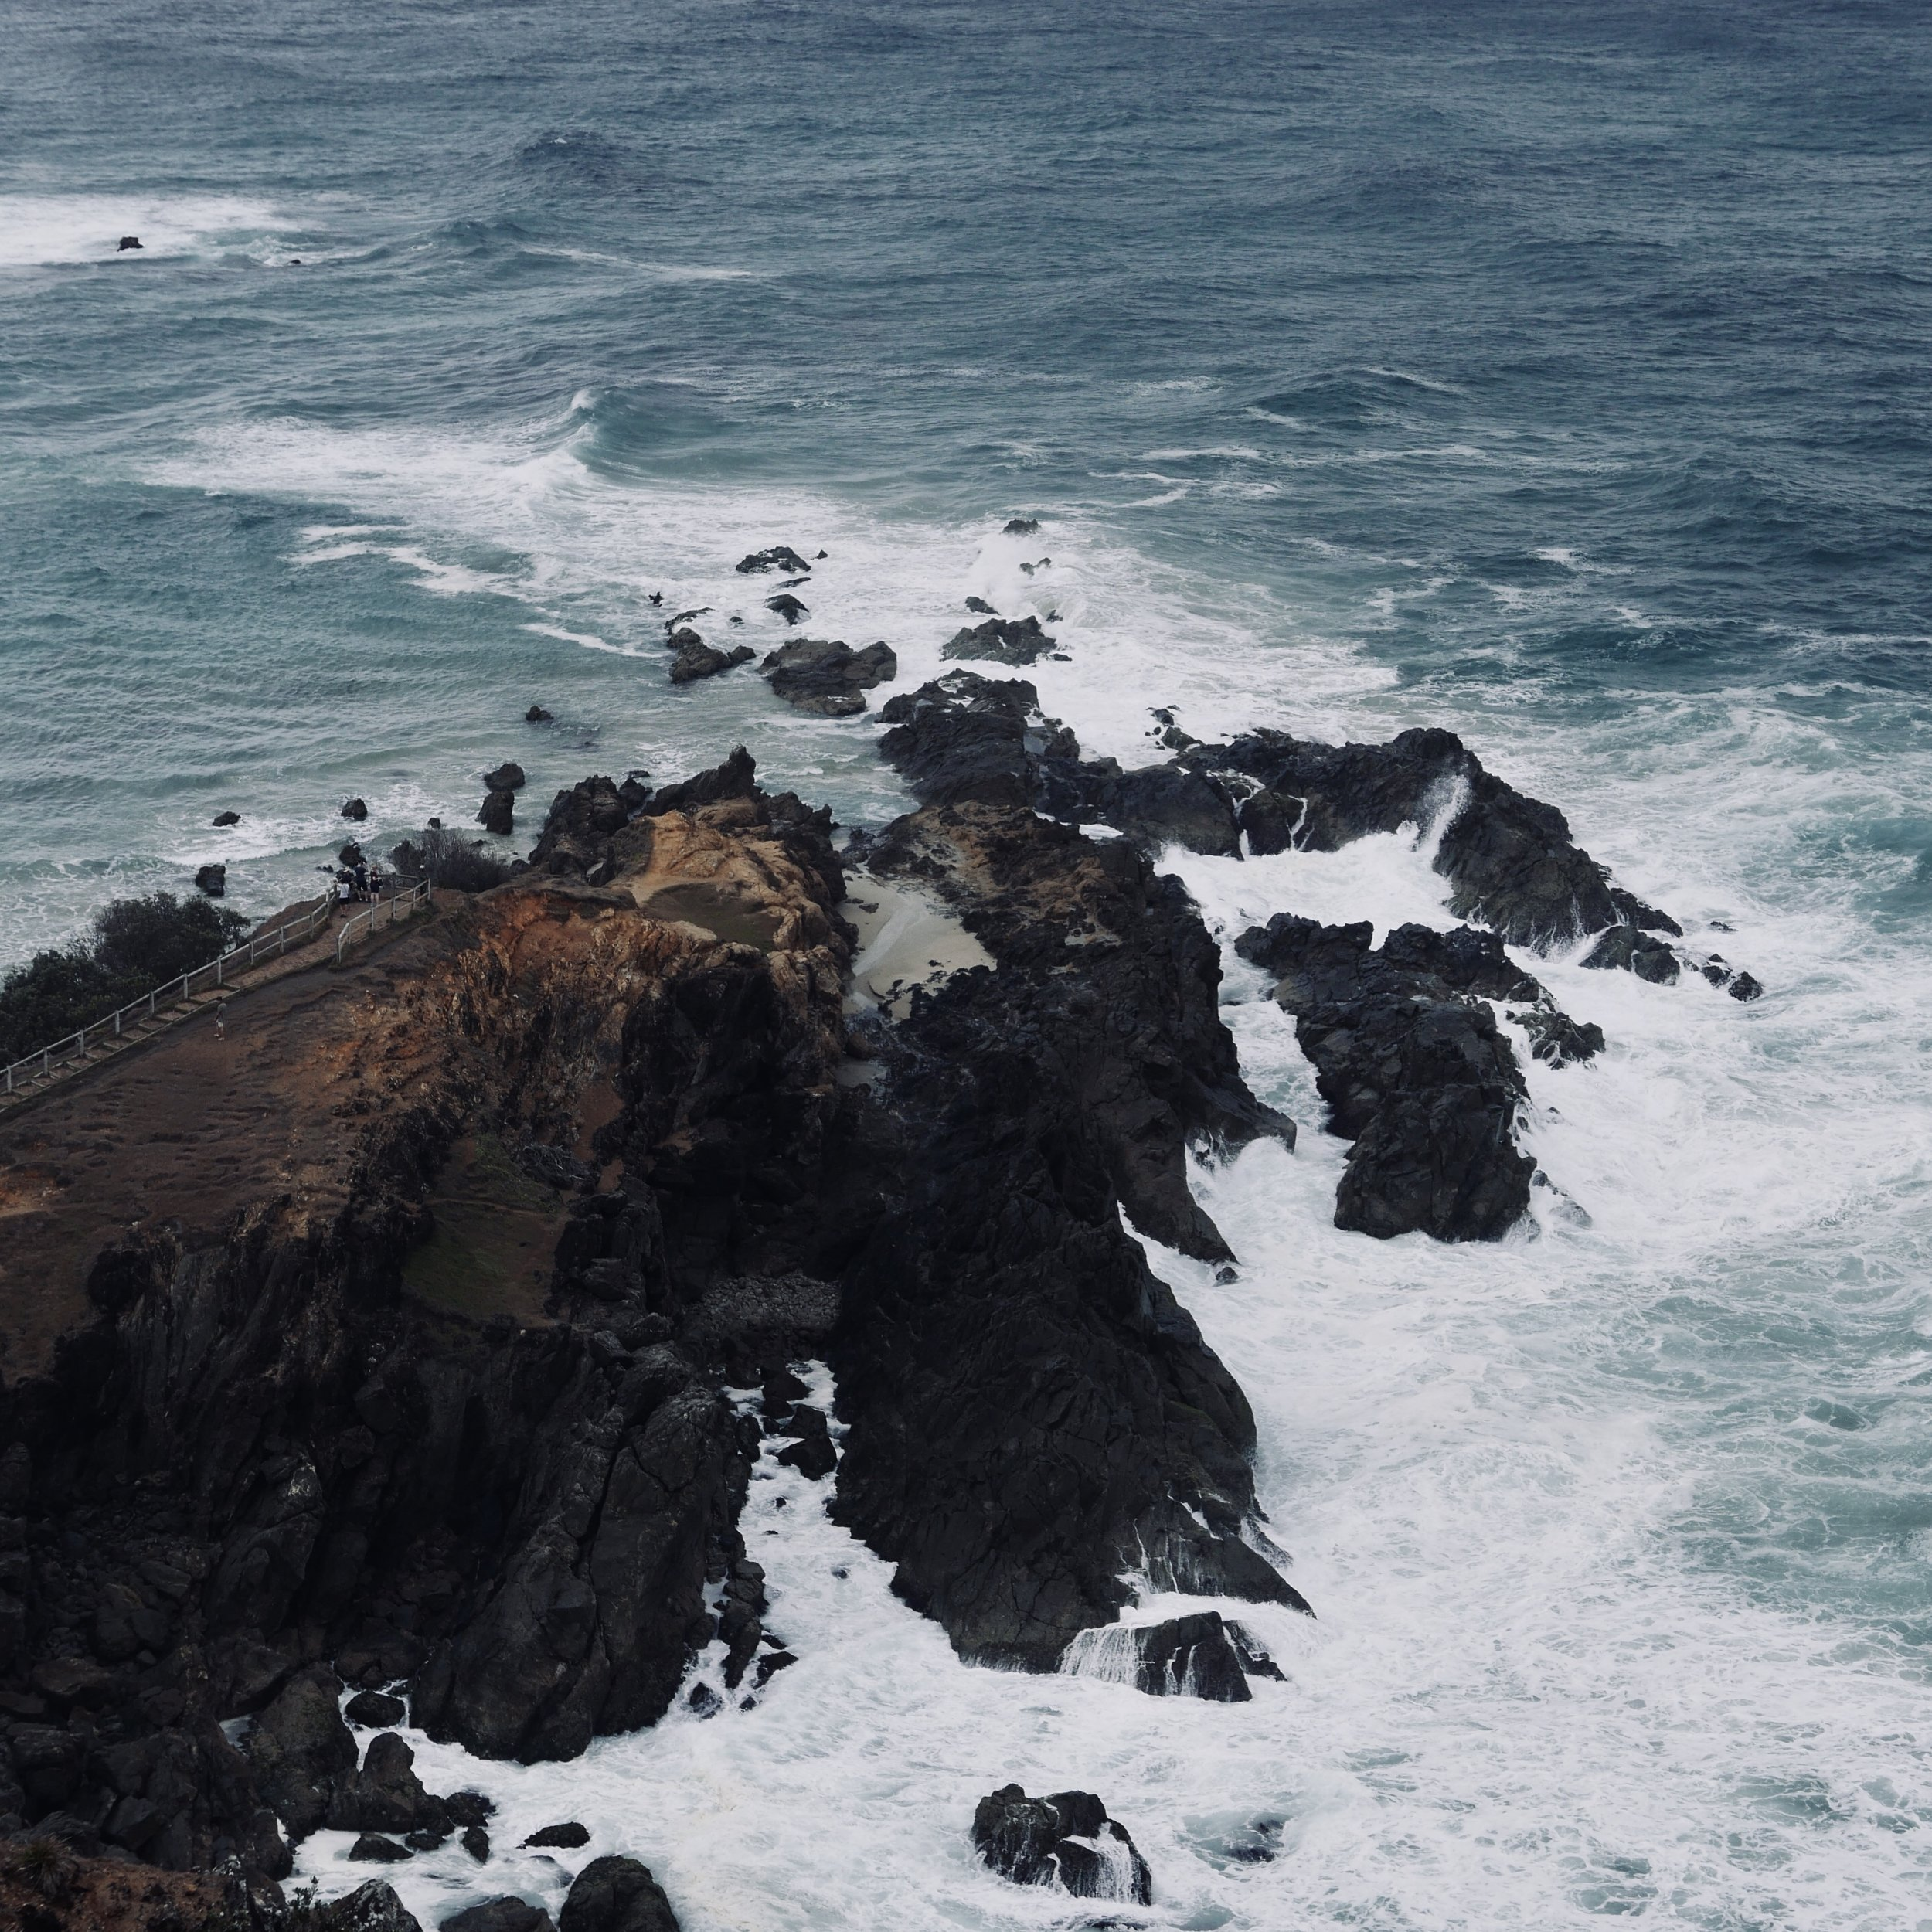 This is the view from the walking track that takes you up to the lighthouse. These dramatic rocky outcrops and crashing waves are powerful and mesmerising to see.